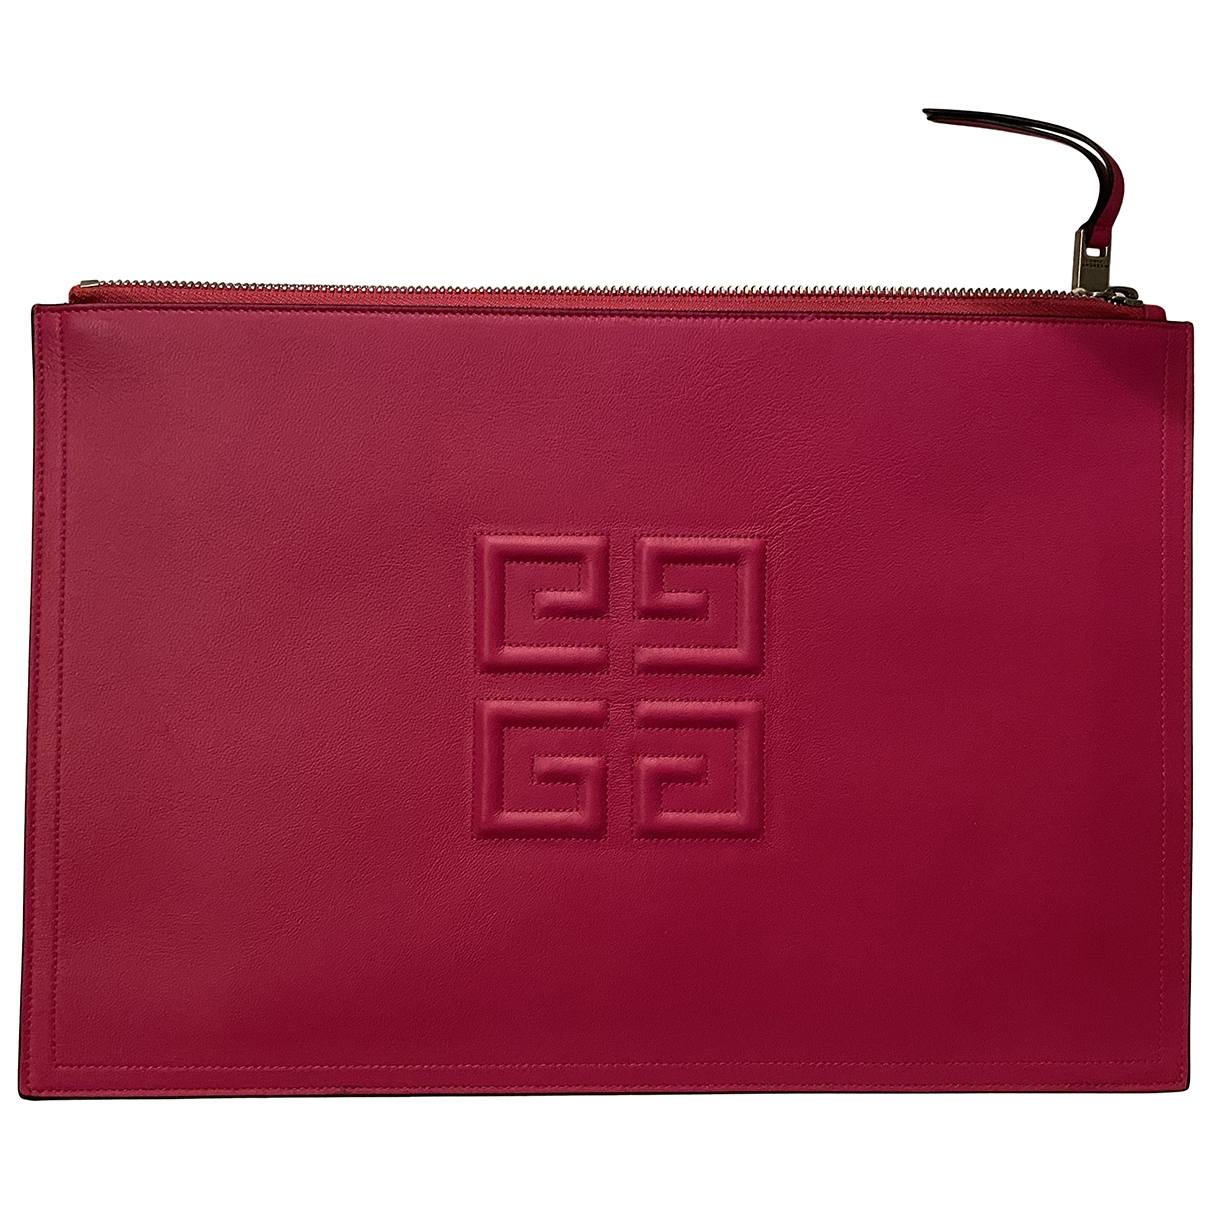 Givenchy \N Clutch in  Rosa Leder